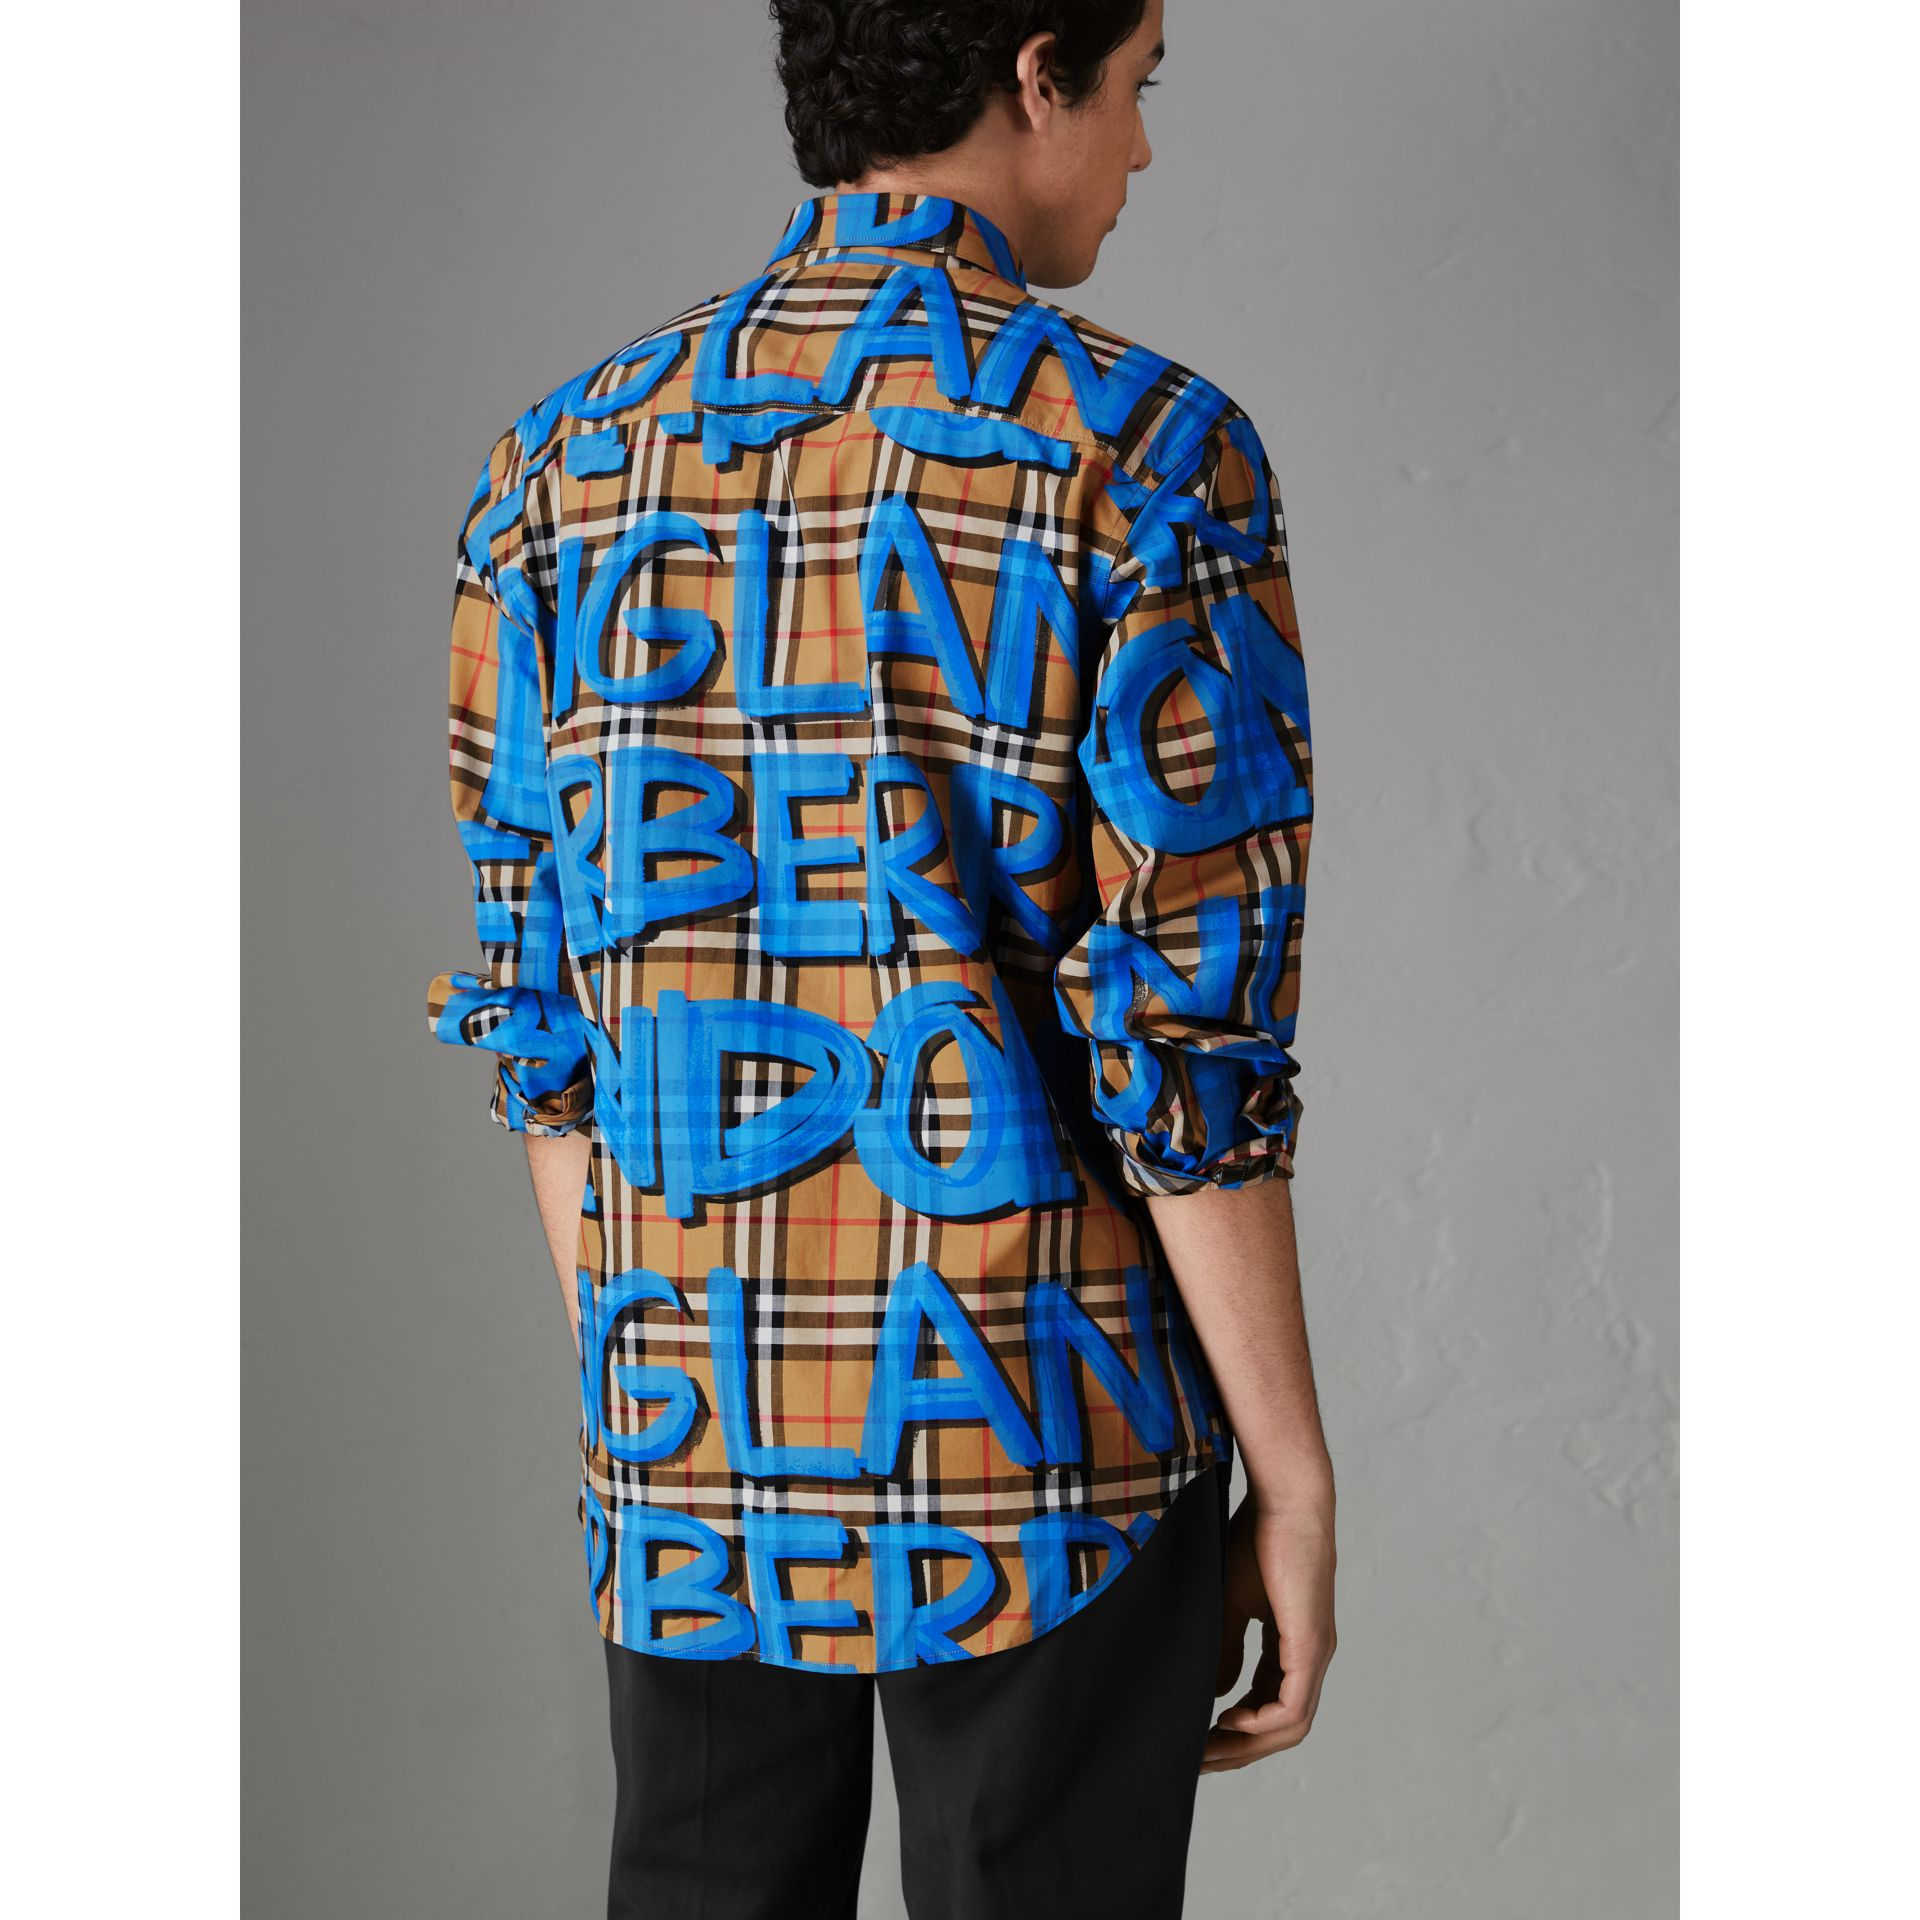 Graffiti Print Vintage Check Shirt in Bright Blue - Men | Burberry Australia - gallery image 2